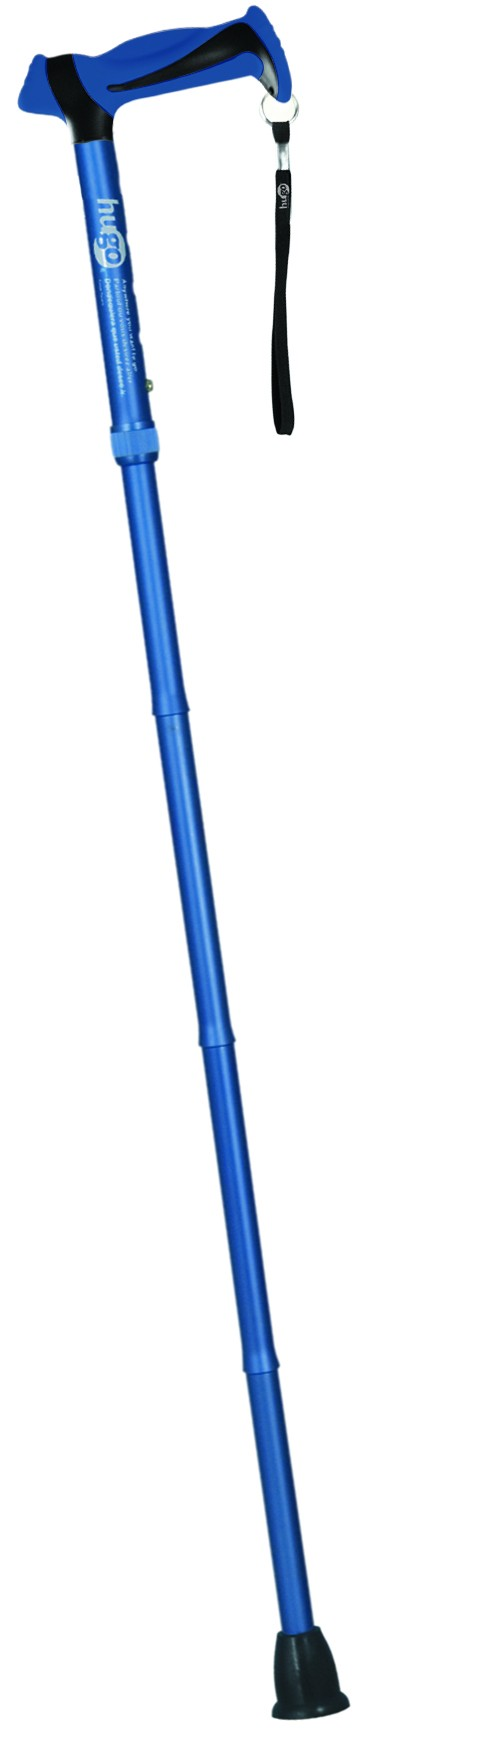 Adjustable Folding Cane with Reflective Strap